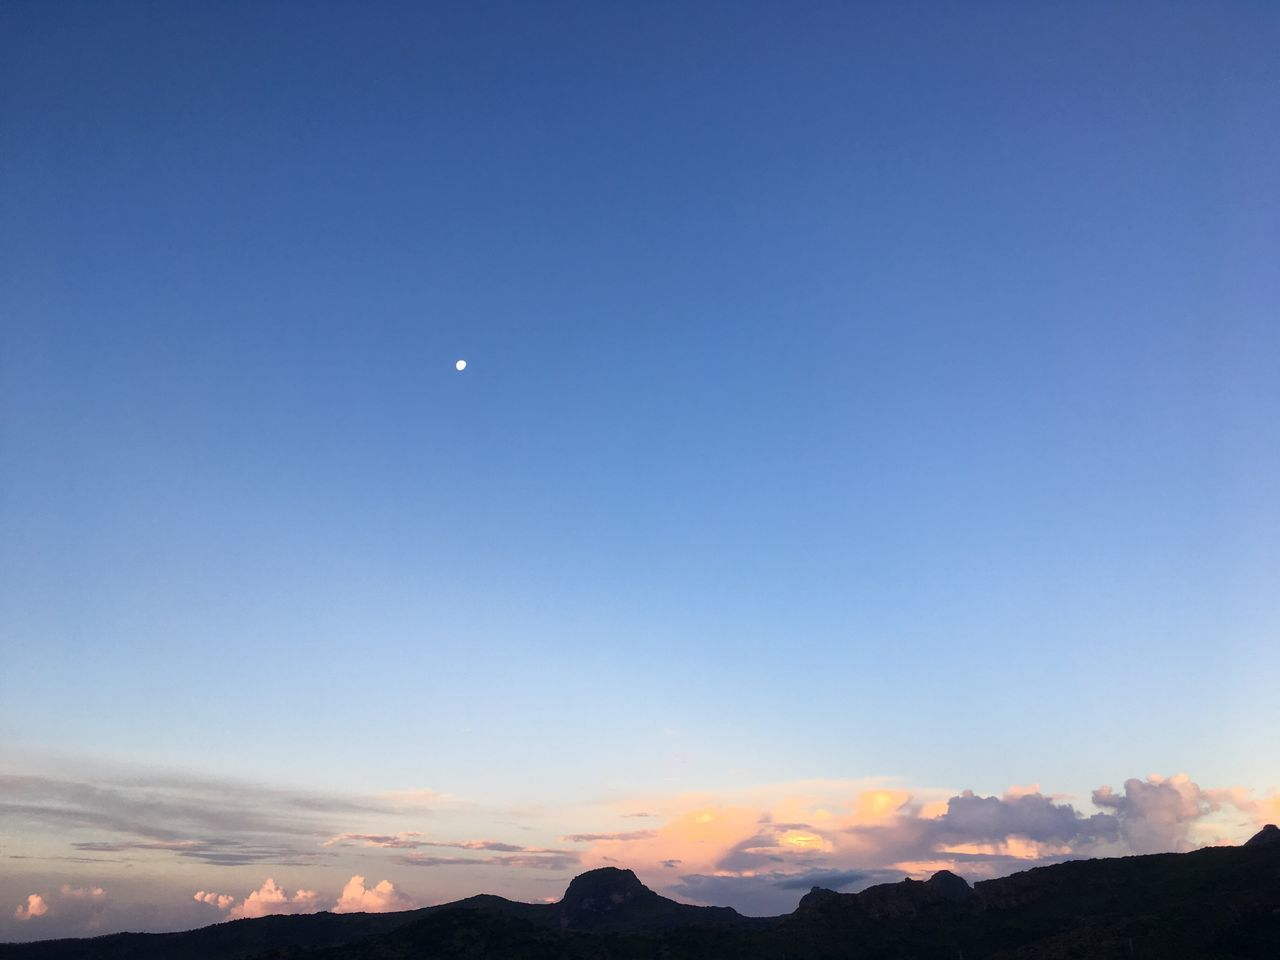 Perfect view for relaxation and contemplation... Moon Scenics Nature Beauty In Nature Crescent Tranquil Scene Sky Copy Space Tranquility No People Outdoors Half Moon Astronomy Mountain Clear Sky Night EyeEmNewHere Naturelover Naturephotography Nature_perfection Nature Photography Naturelovers Nature_collection The Great Outdoors - 2017 EyeEm Awards Mountains